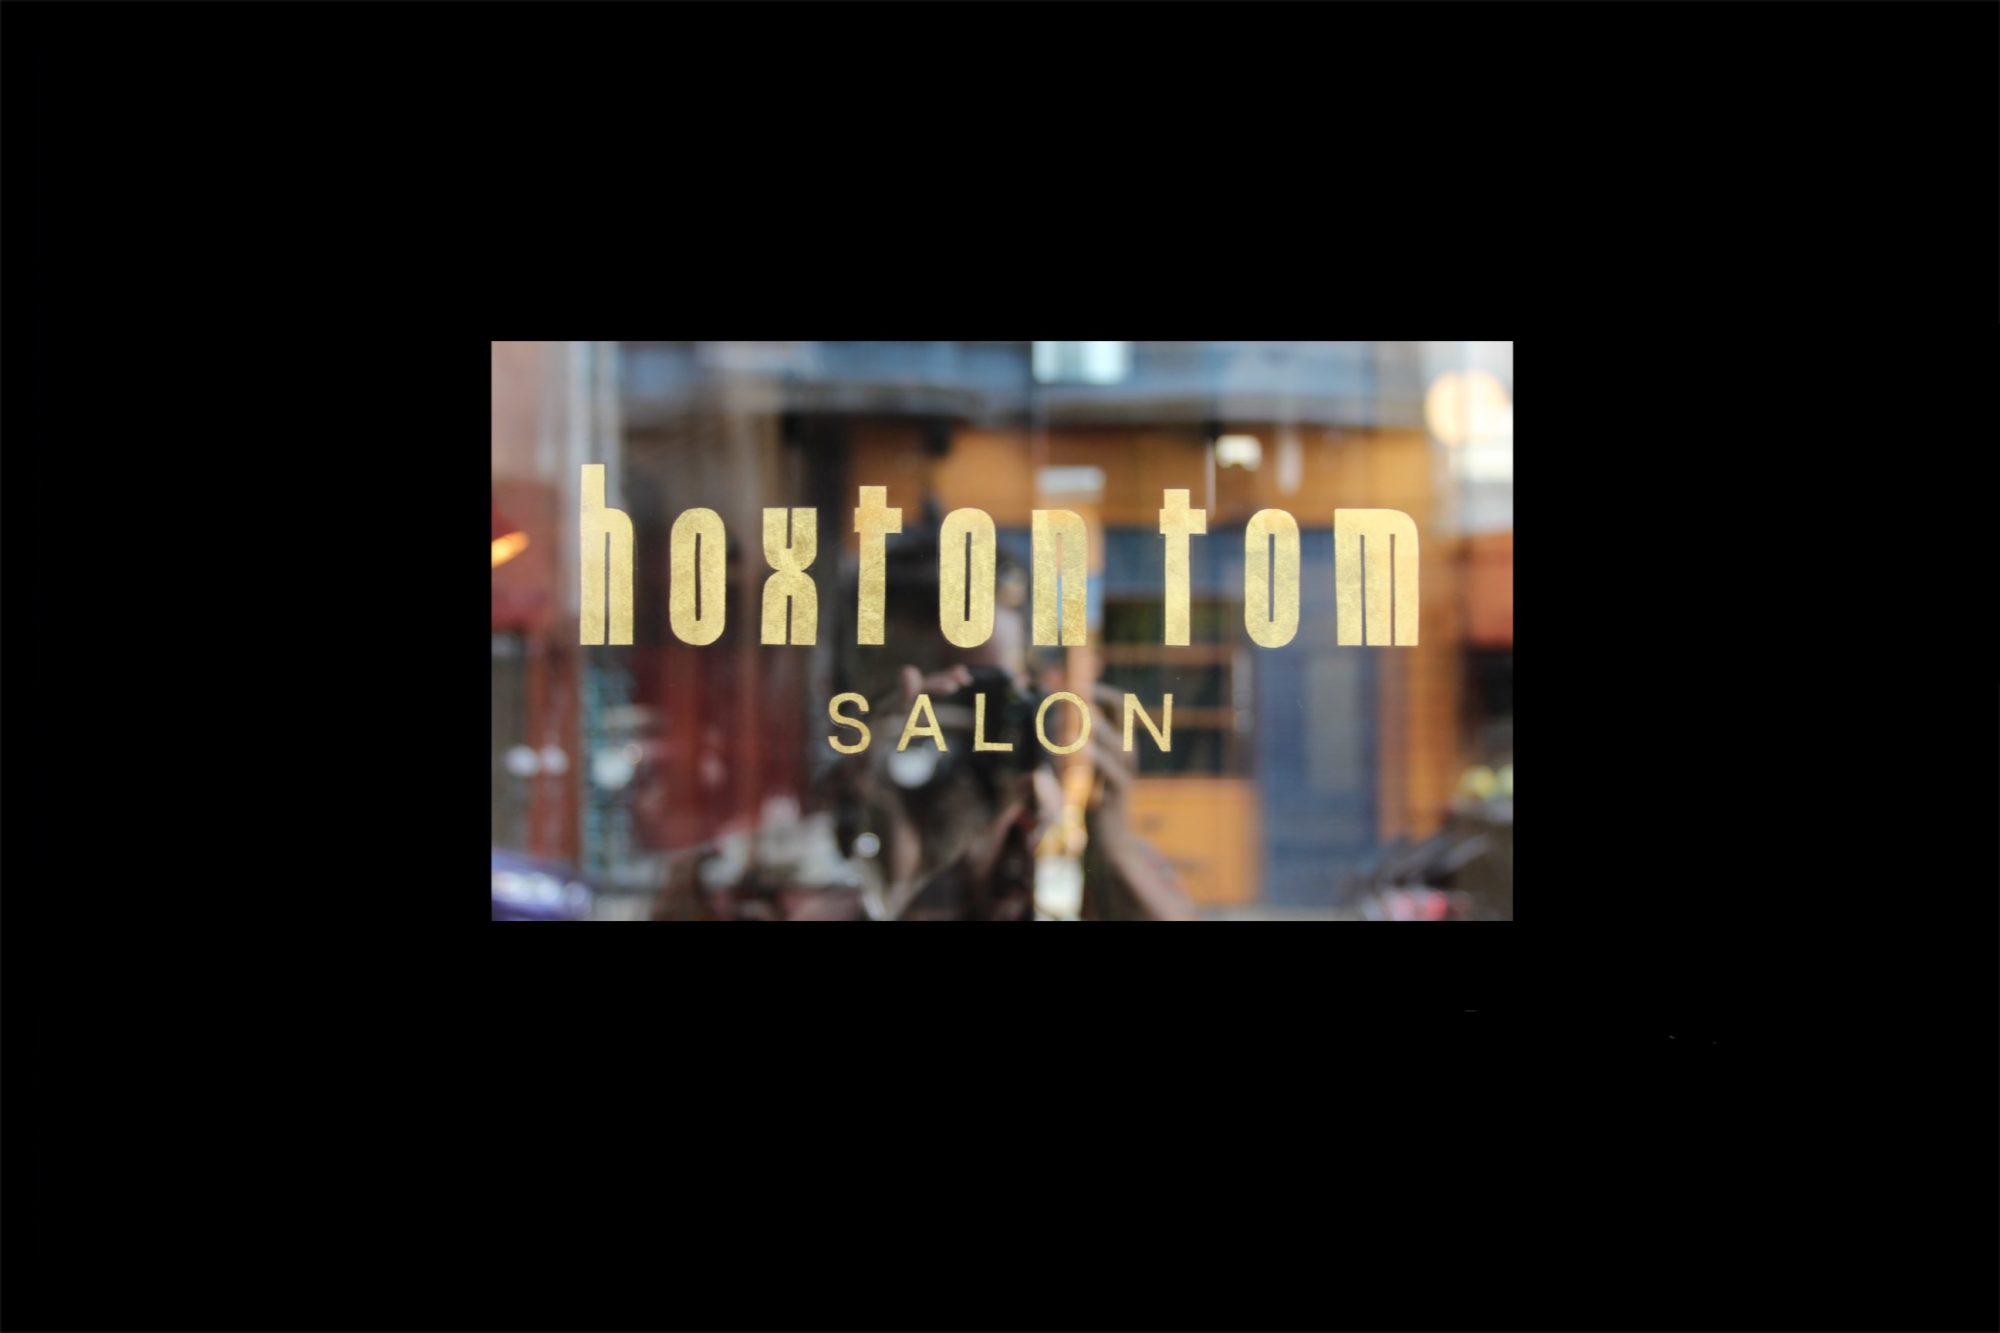 HoxtonTom Salon